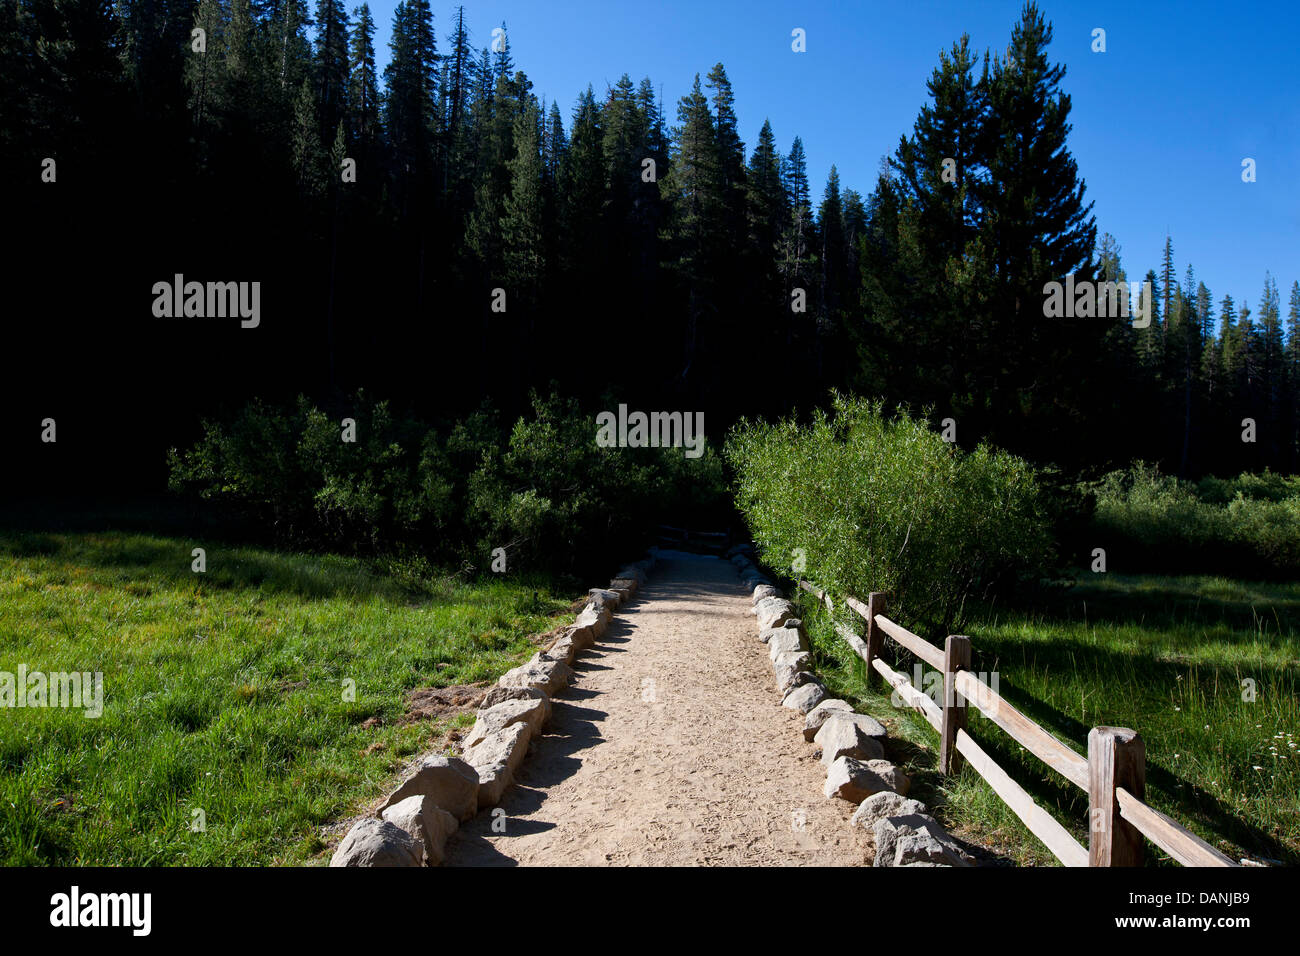 Hiking trail to Devils Postpile National Monument, California, United States of America - Stock Image